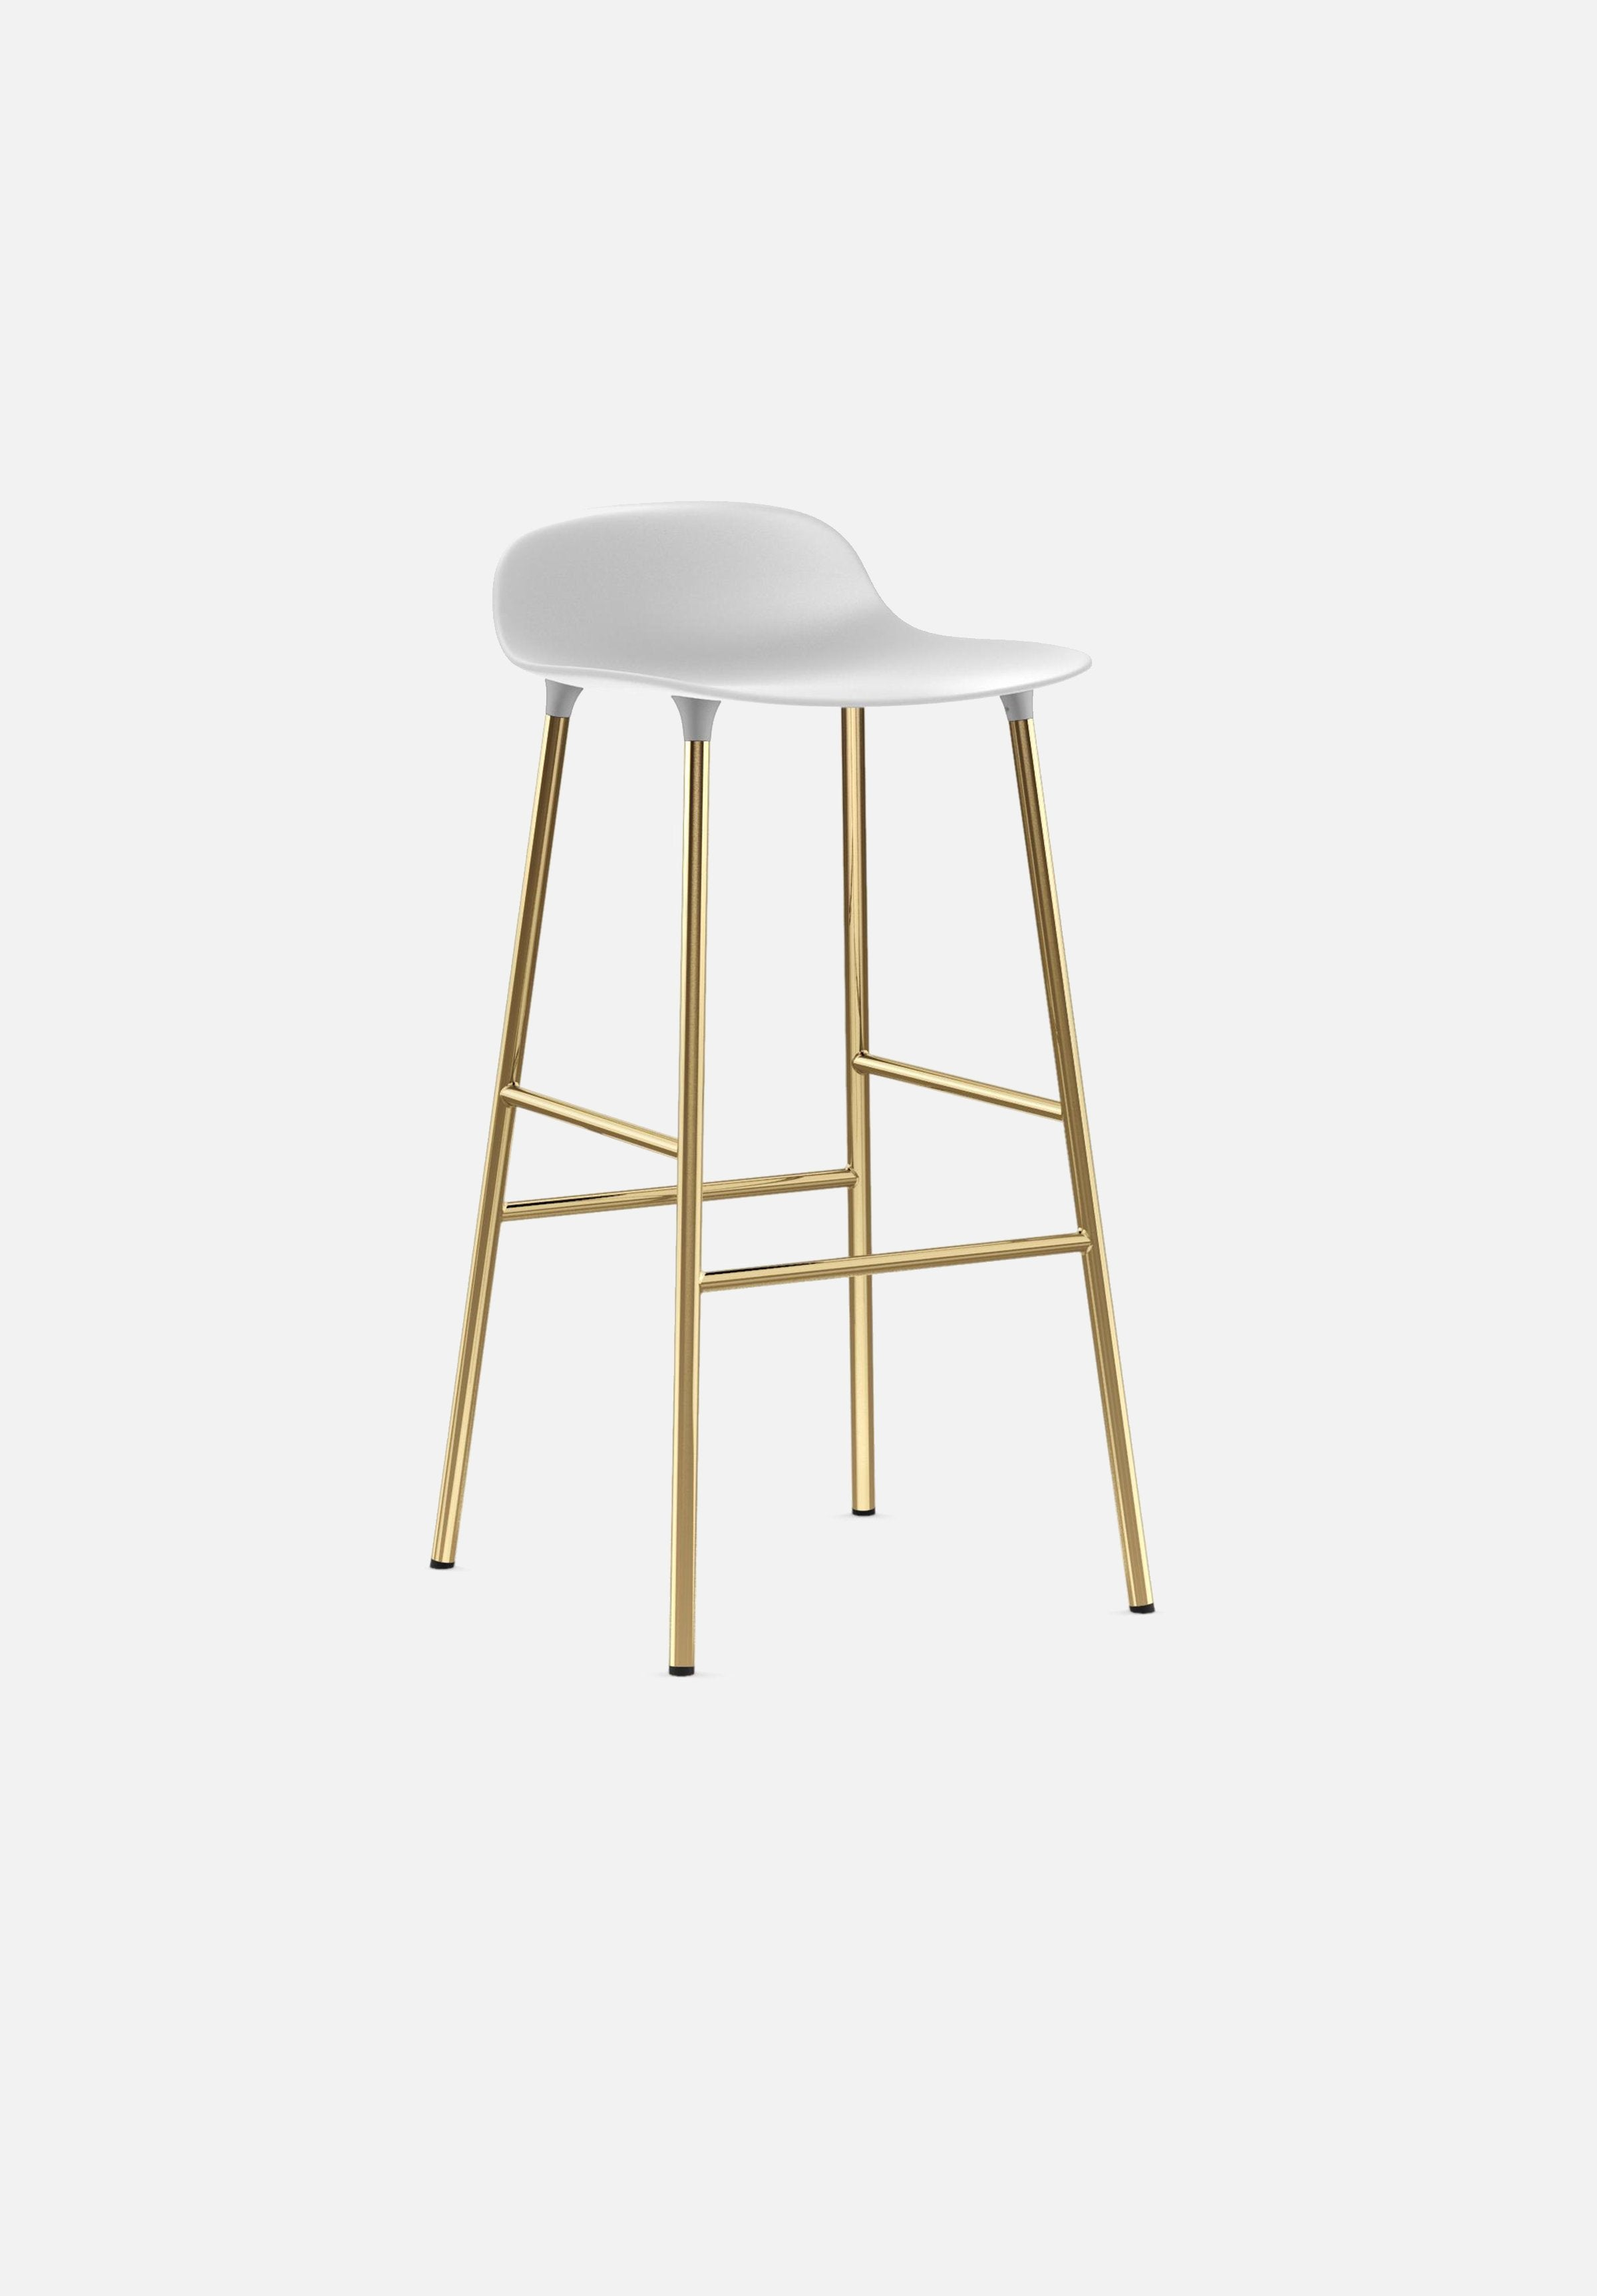 Form Stool — 75cm-Simon Legald-Normann Copenhagen-White-Brass-Average-canada-design-store-danish-denmark-furniture-interior